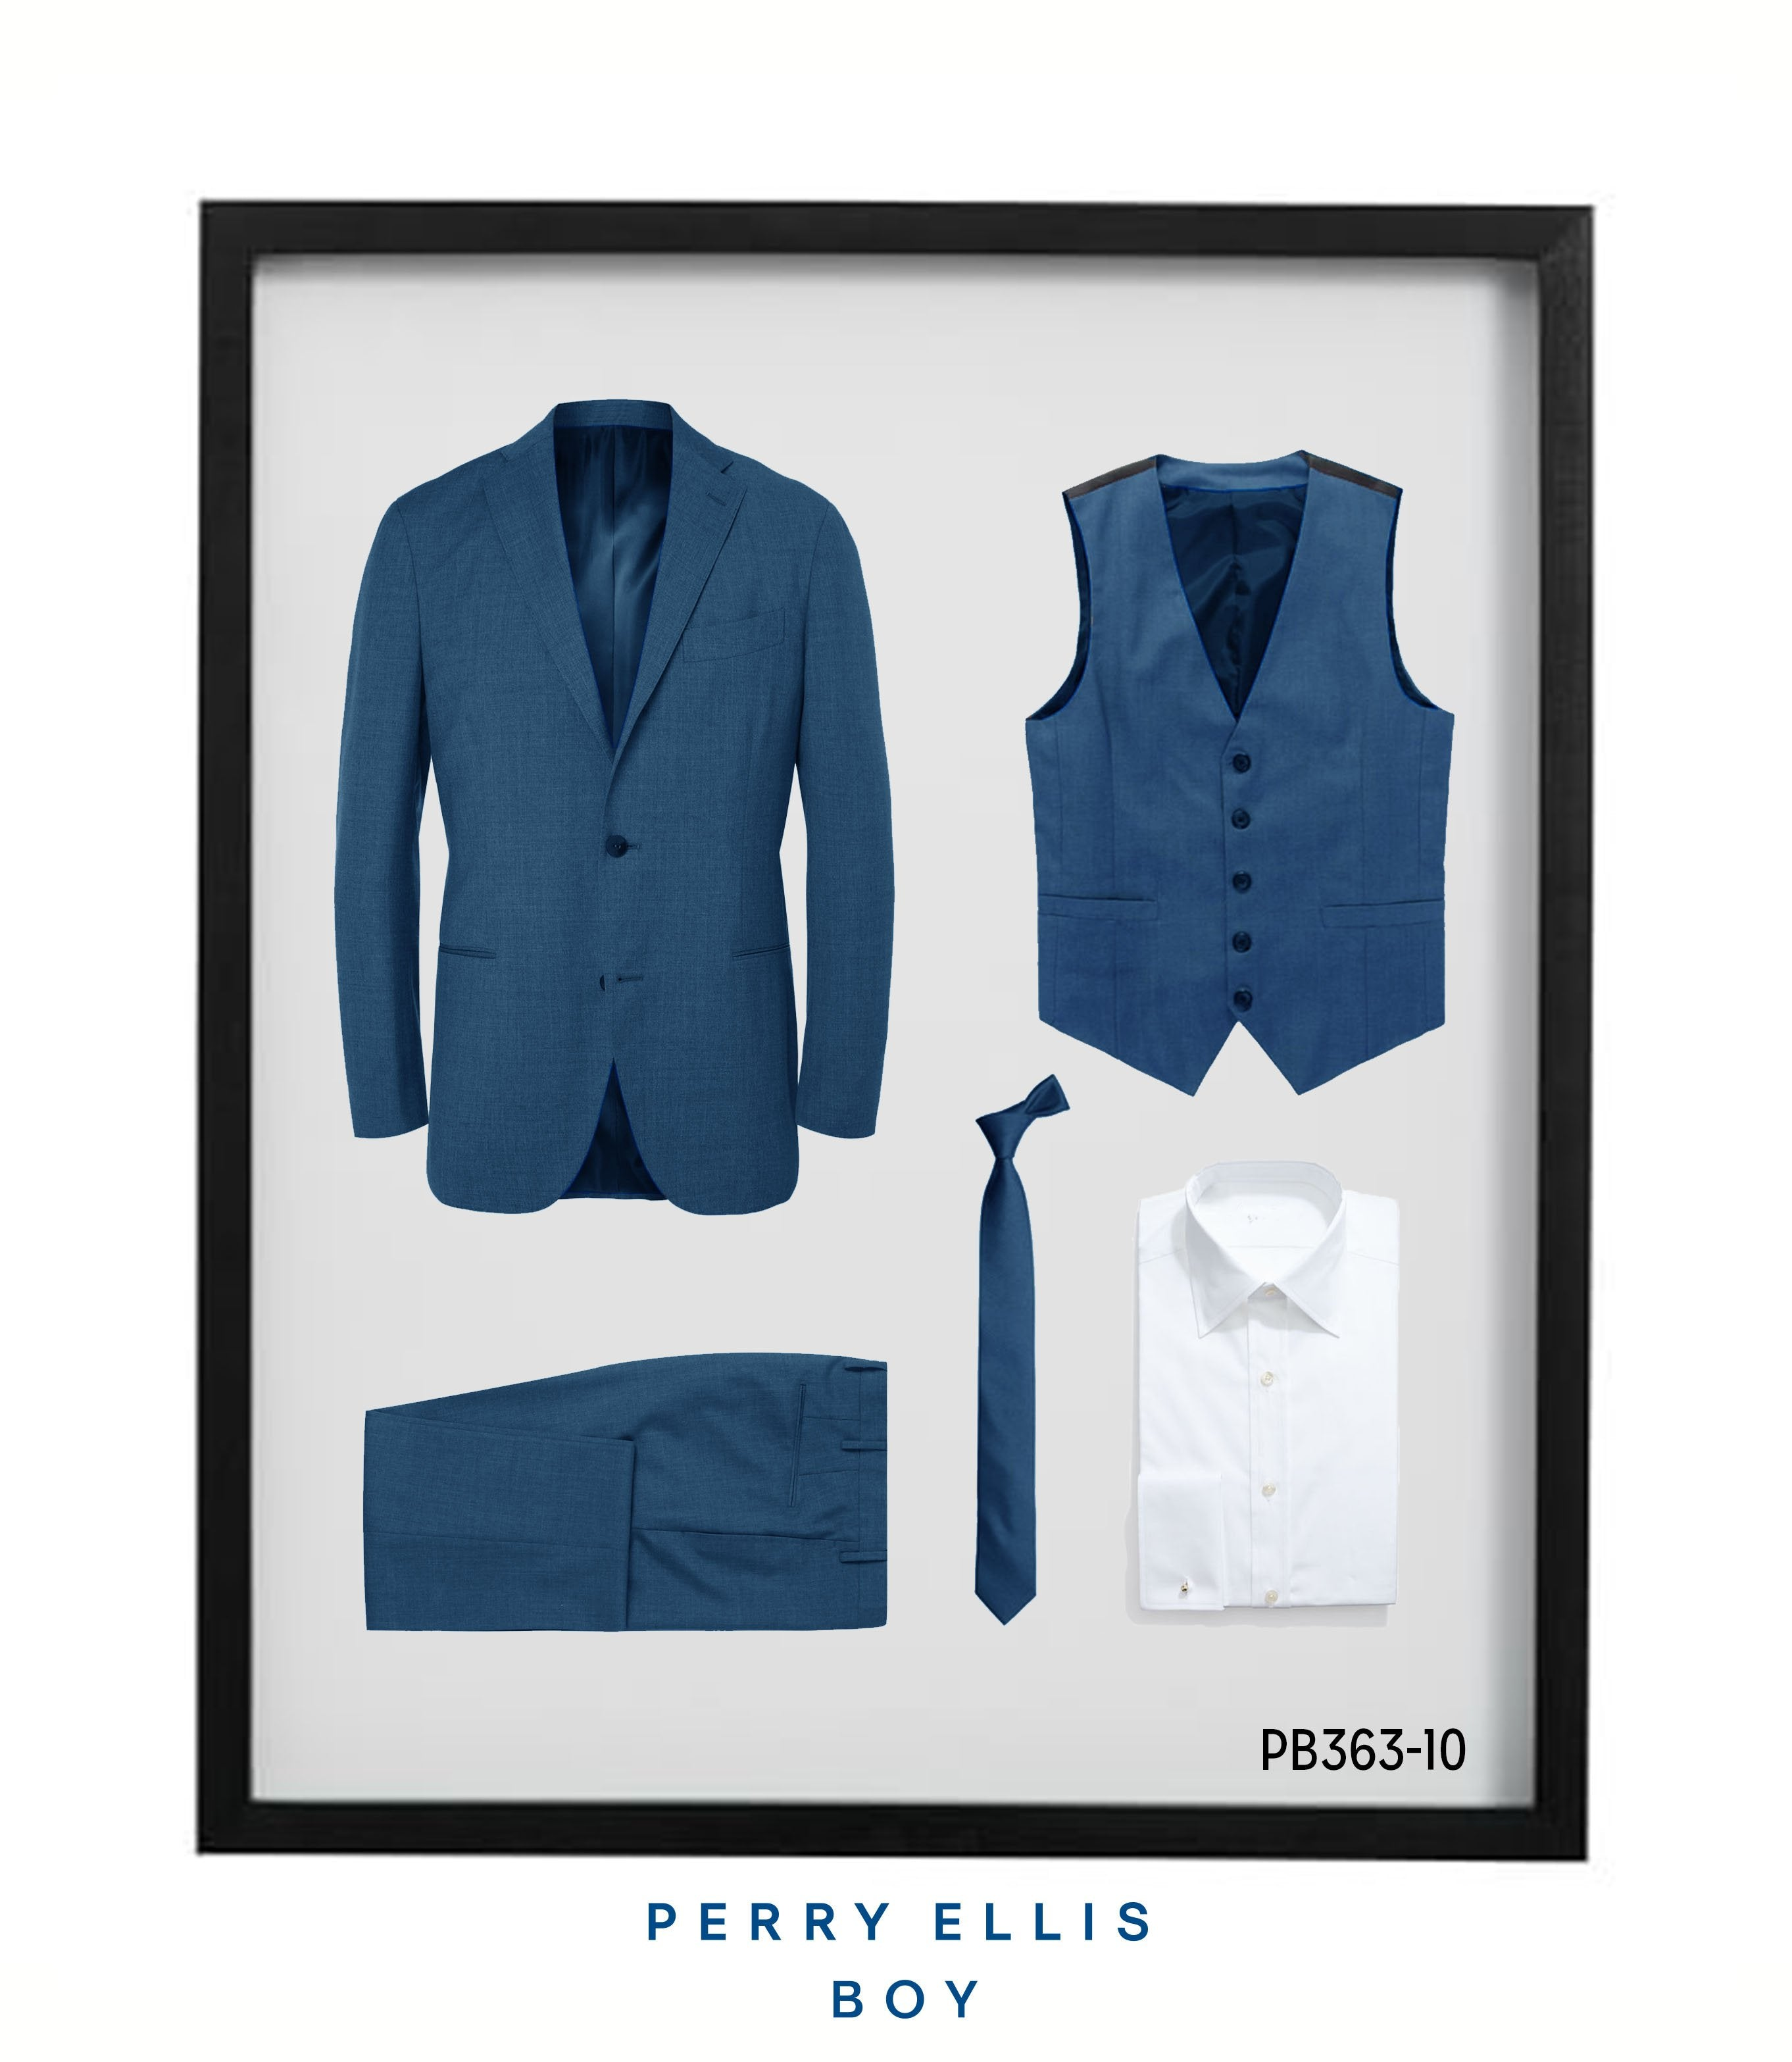 Perry Ellis Boys Suit Indigo Blue Suits For Boy's